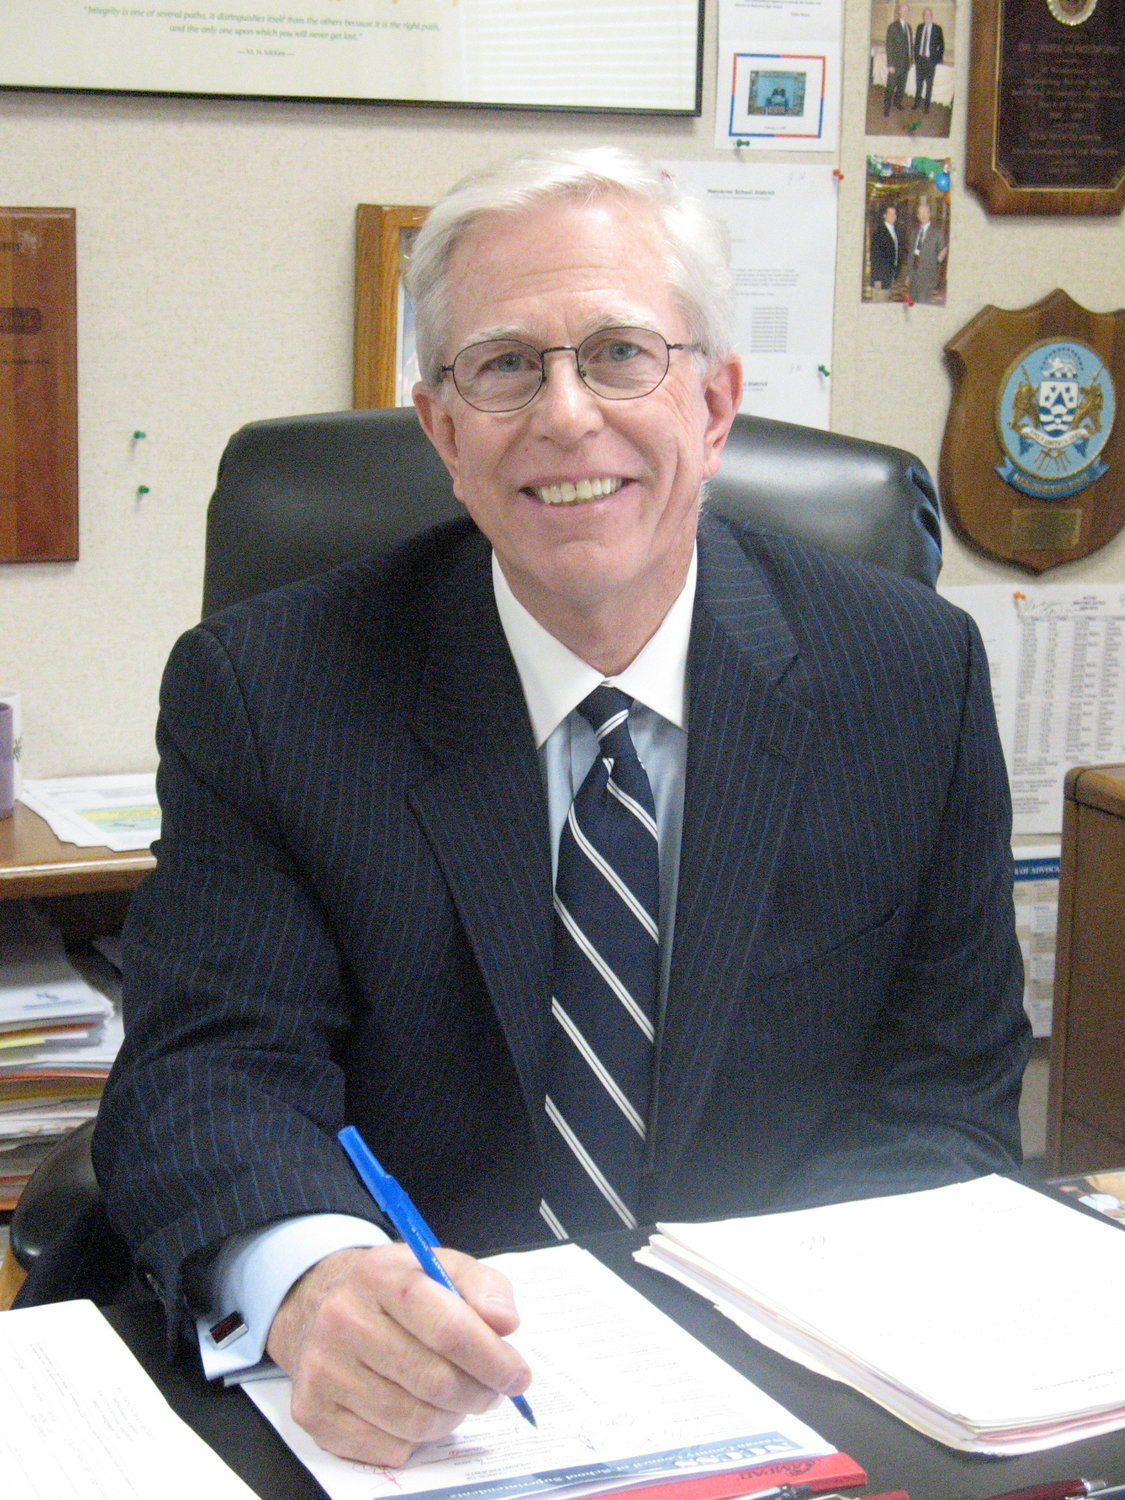 Superintendent Dr. James Hunderfund announced that he plans to retire in September after more than a decade of service in the district.